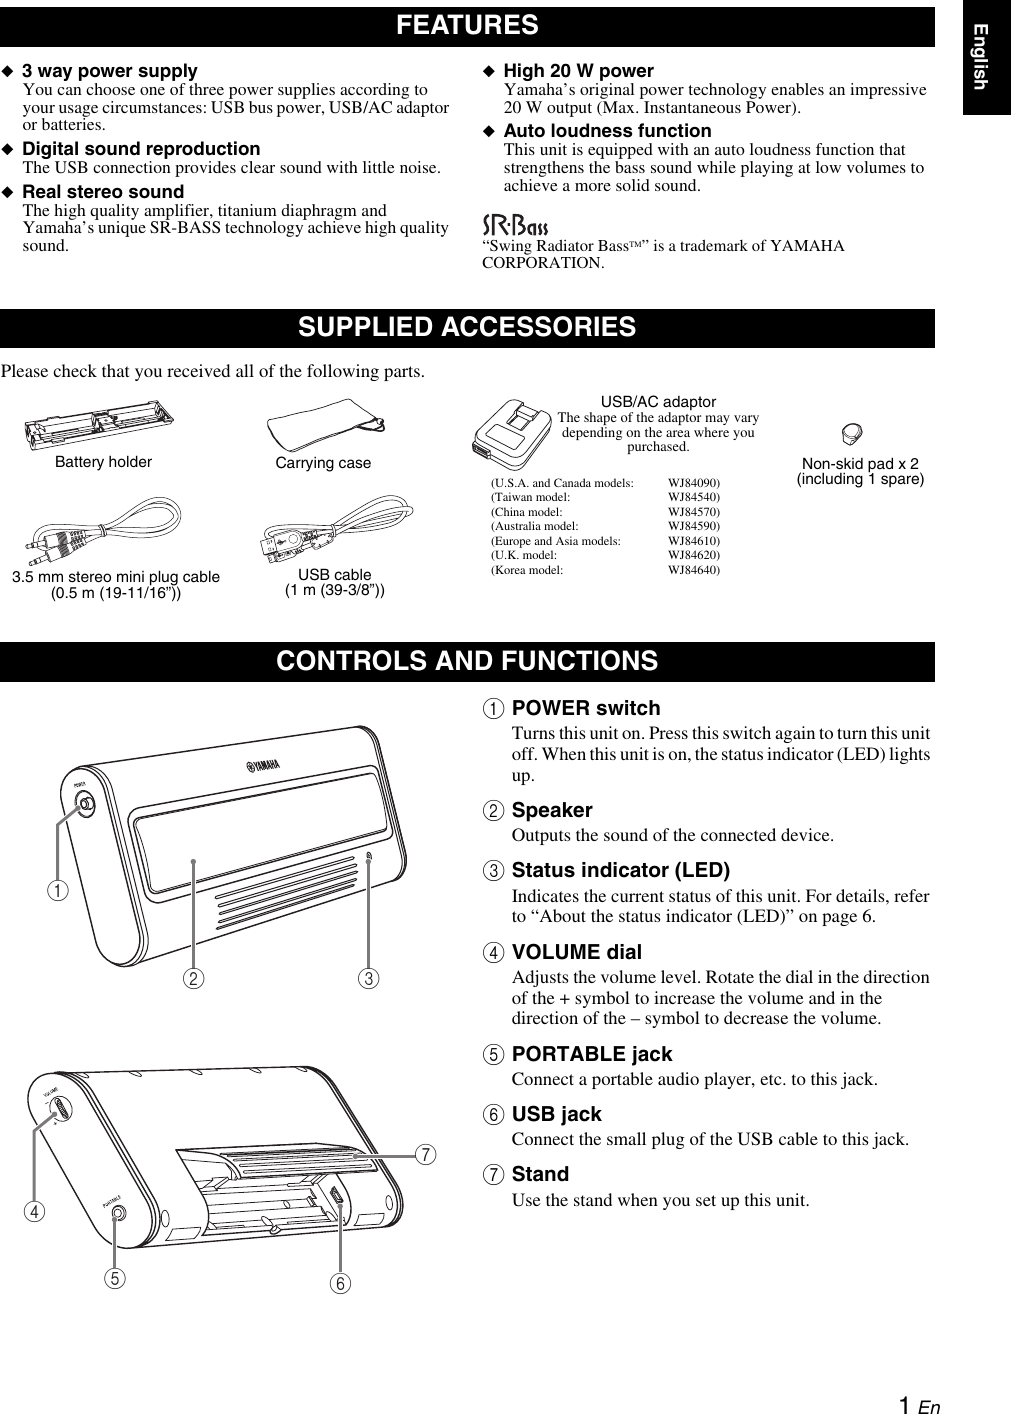 Yamaha Nx U10 Owners Manual 01en 00 Book Uc Usb Jack Wiring Page 5 Of 12